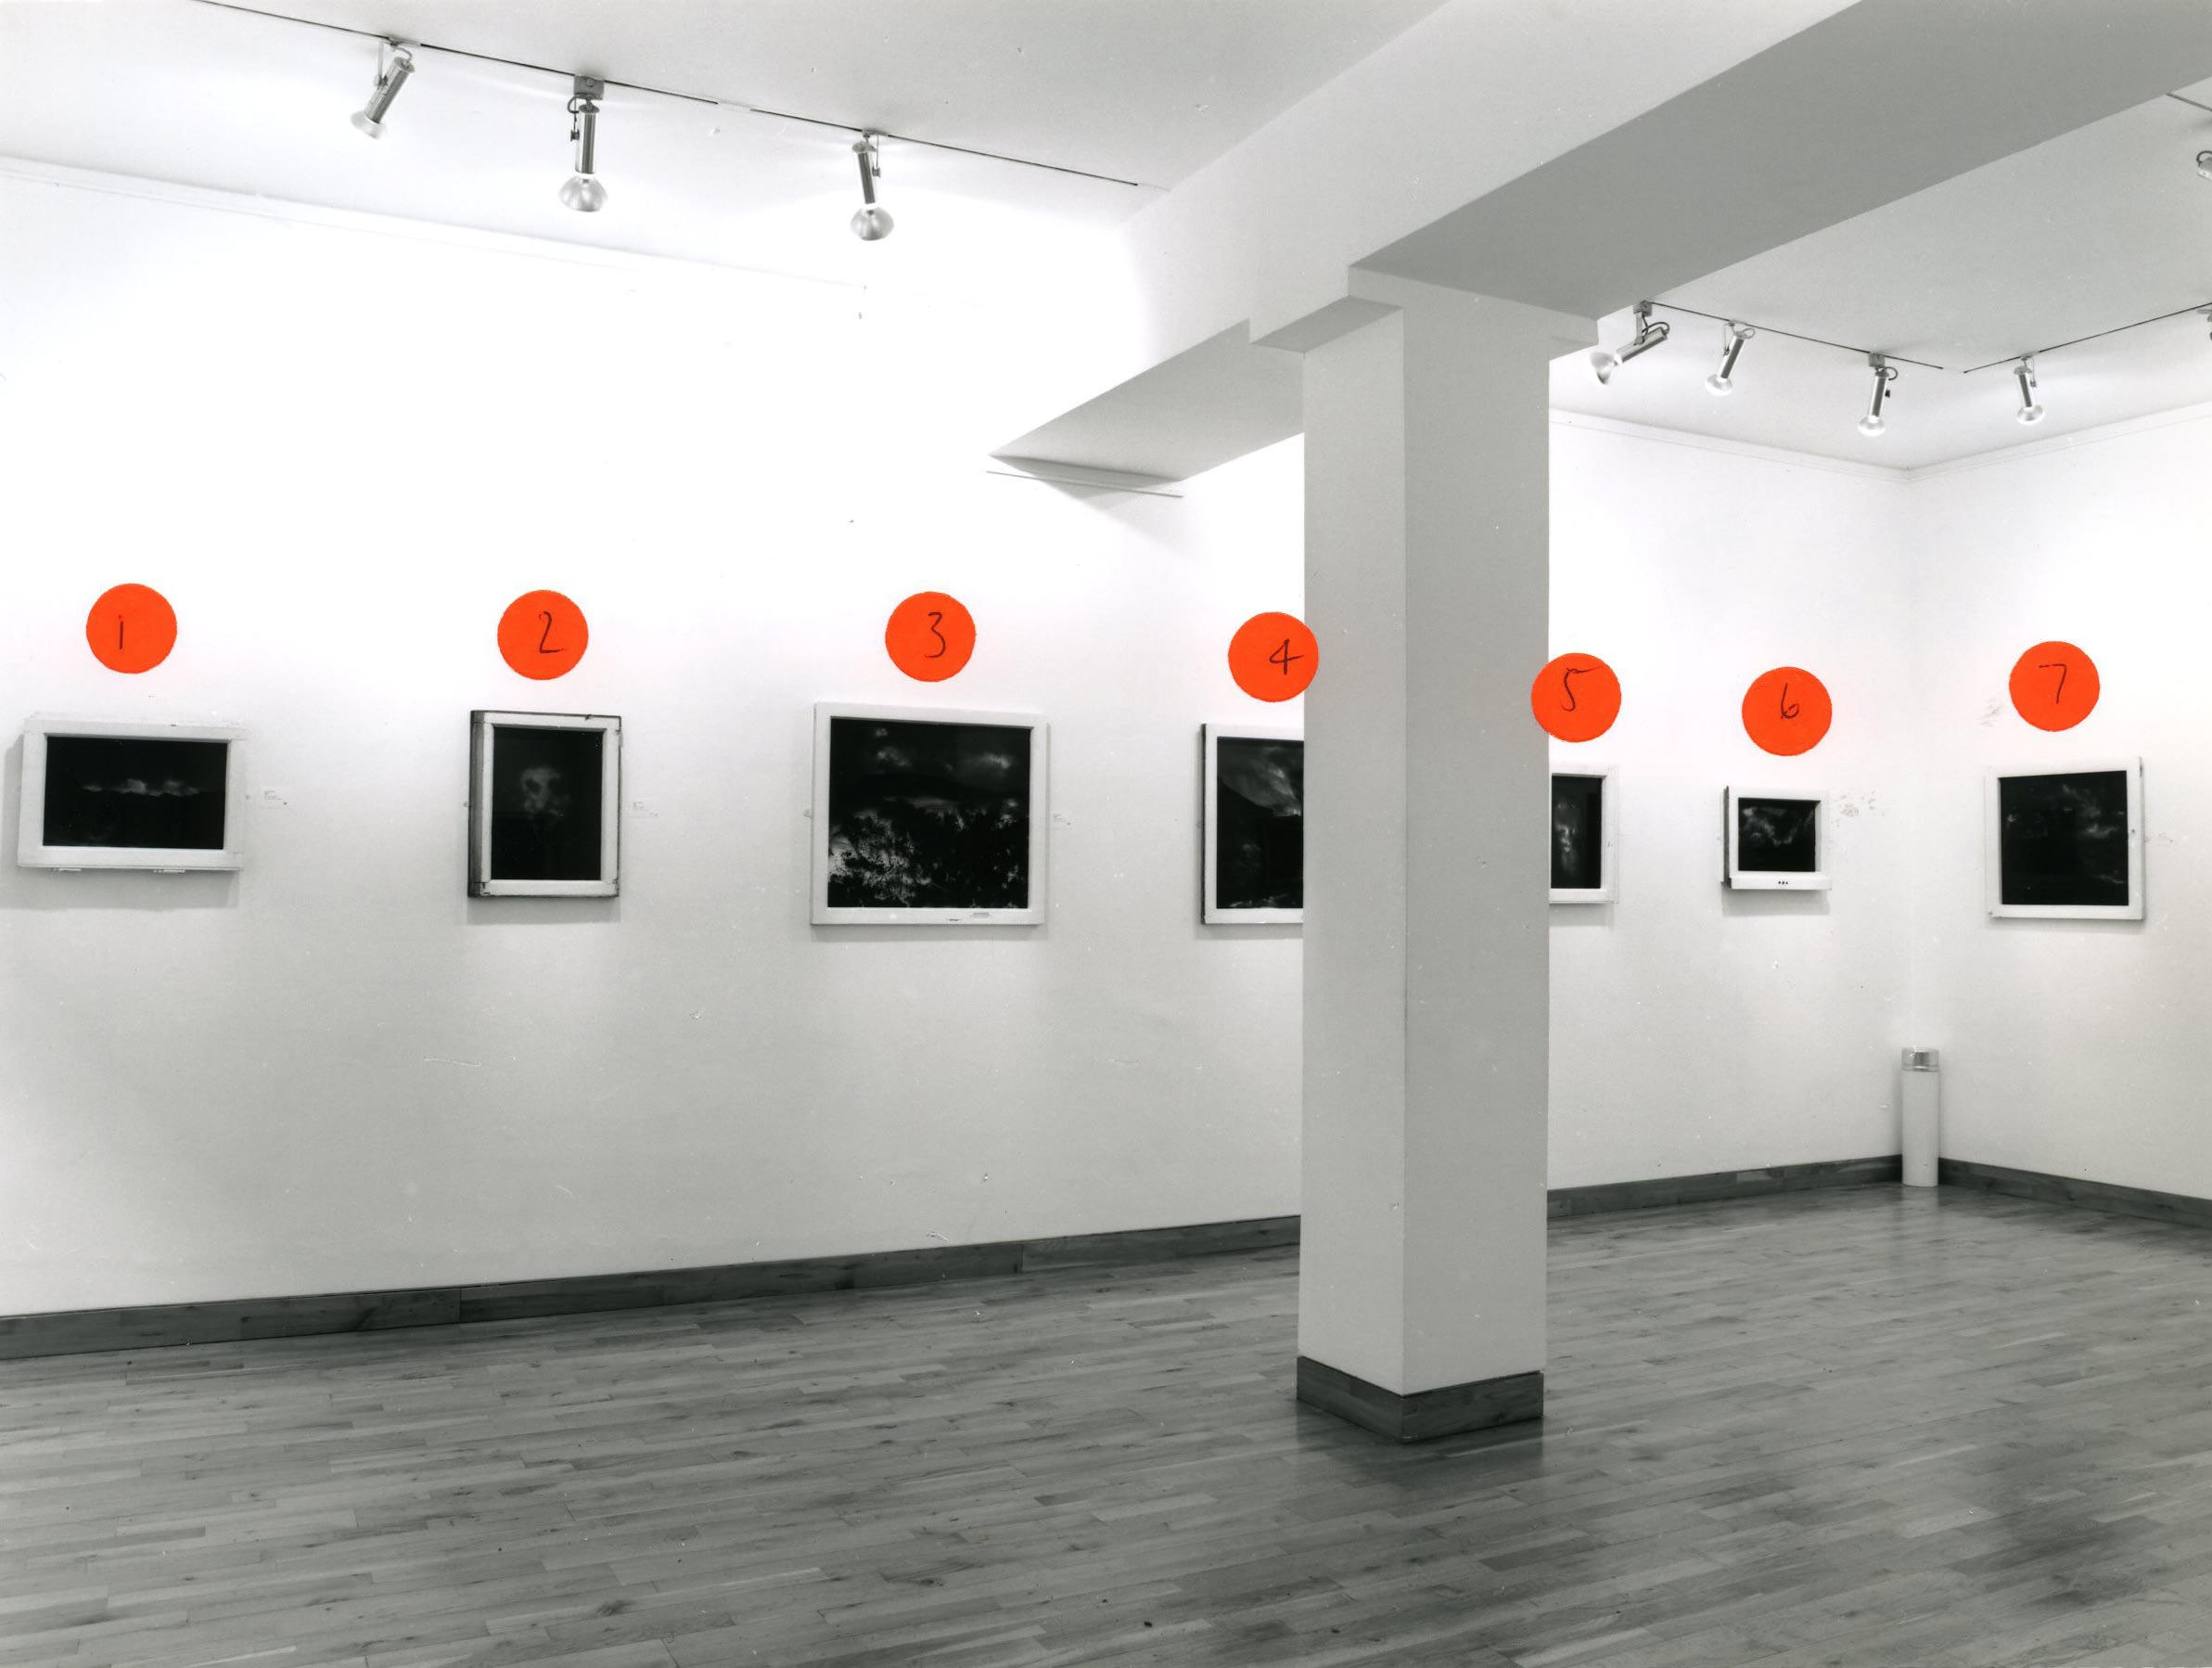 """<span class=""""link fancybox-details-link""""><a href=""""/exhibitions/173/works/image_standalone774/"""">View Detail Page</a></span><p>BEN KADISHMAN   PAINTINGS 1993 - 1998   29 JAN - 13 MAR 1998   Installation View</p>"""